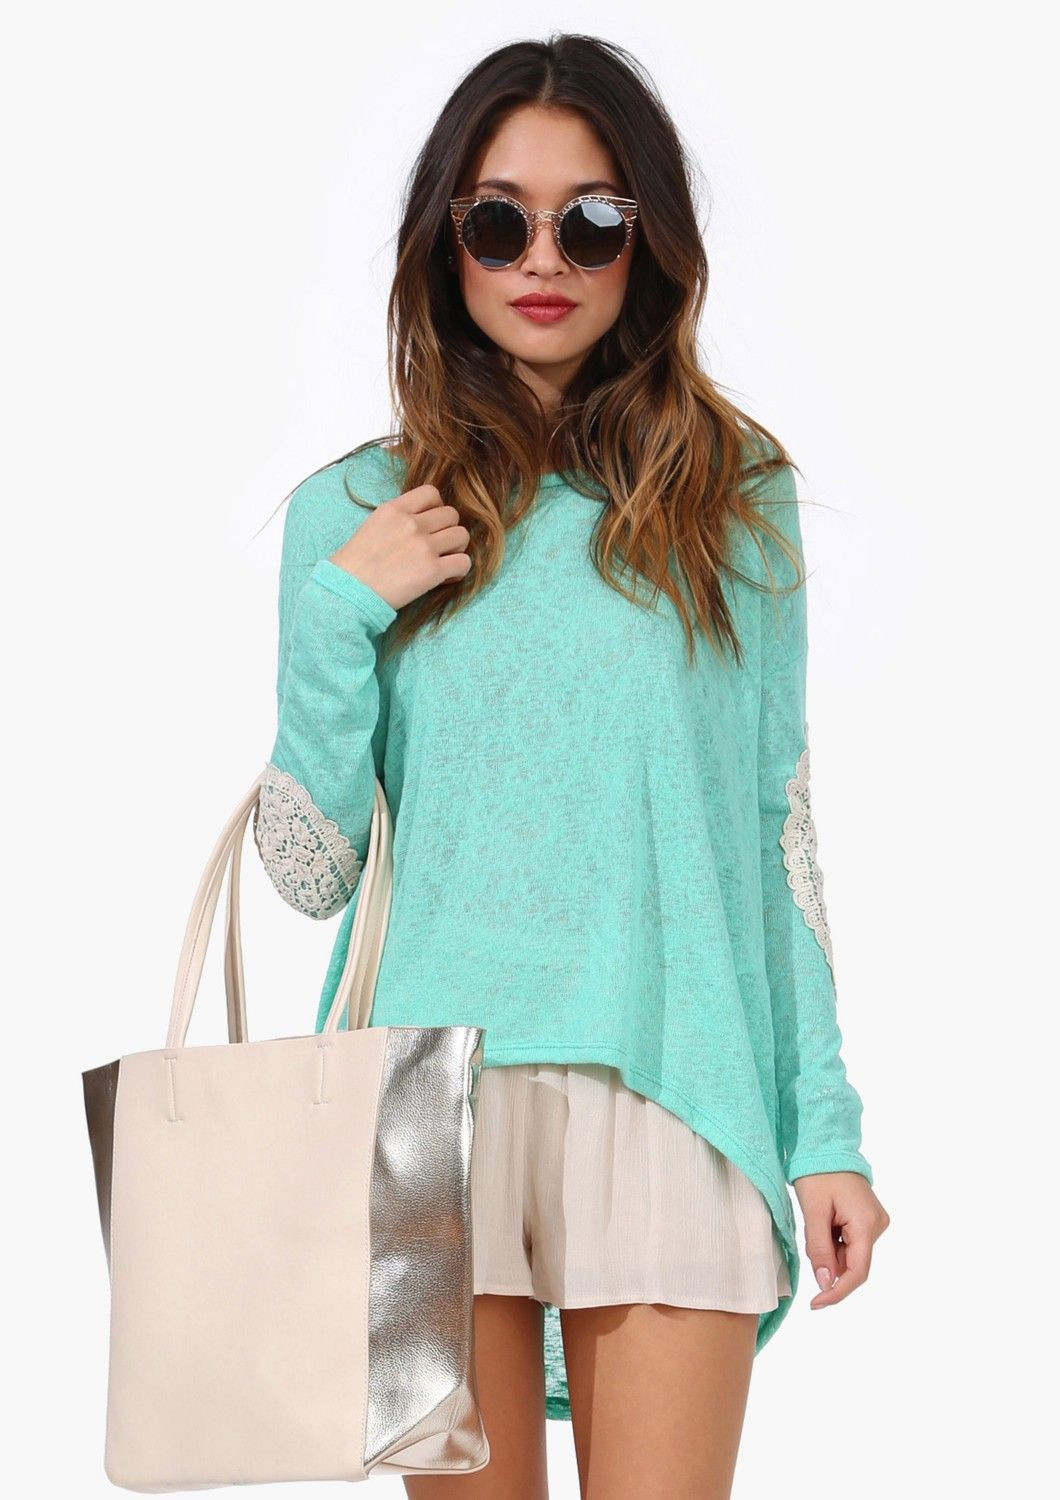 Sweater withlace embellishment on elbow patches